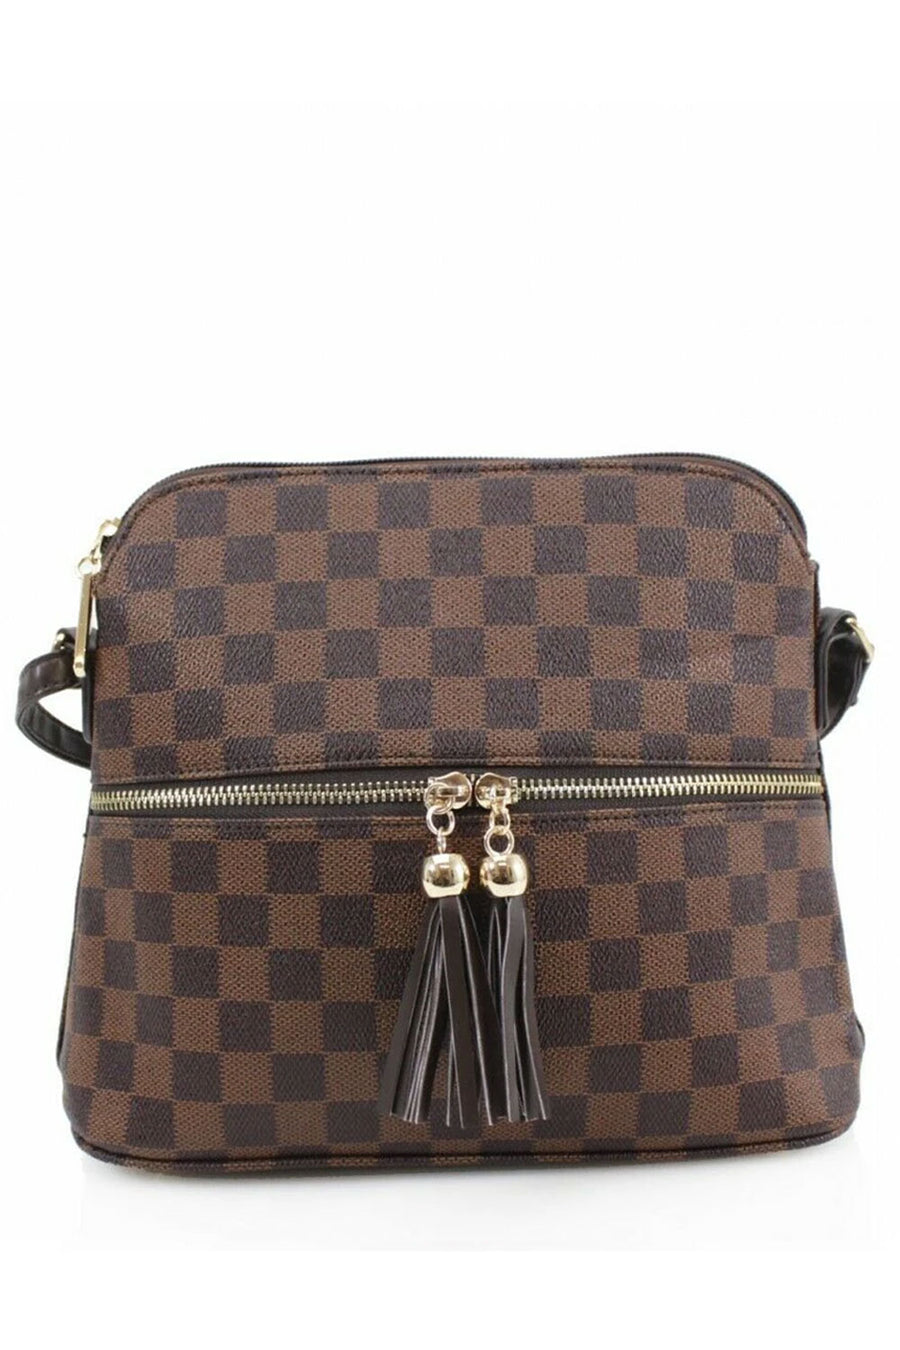 Brown Checkered Cross Body Zip Bag - Adeline